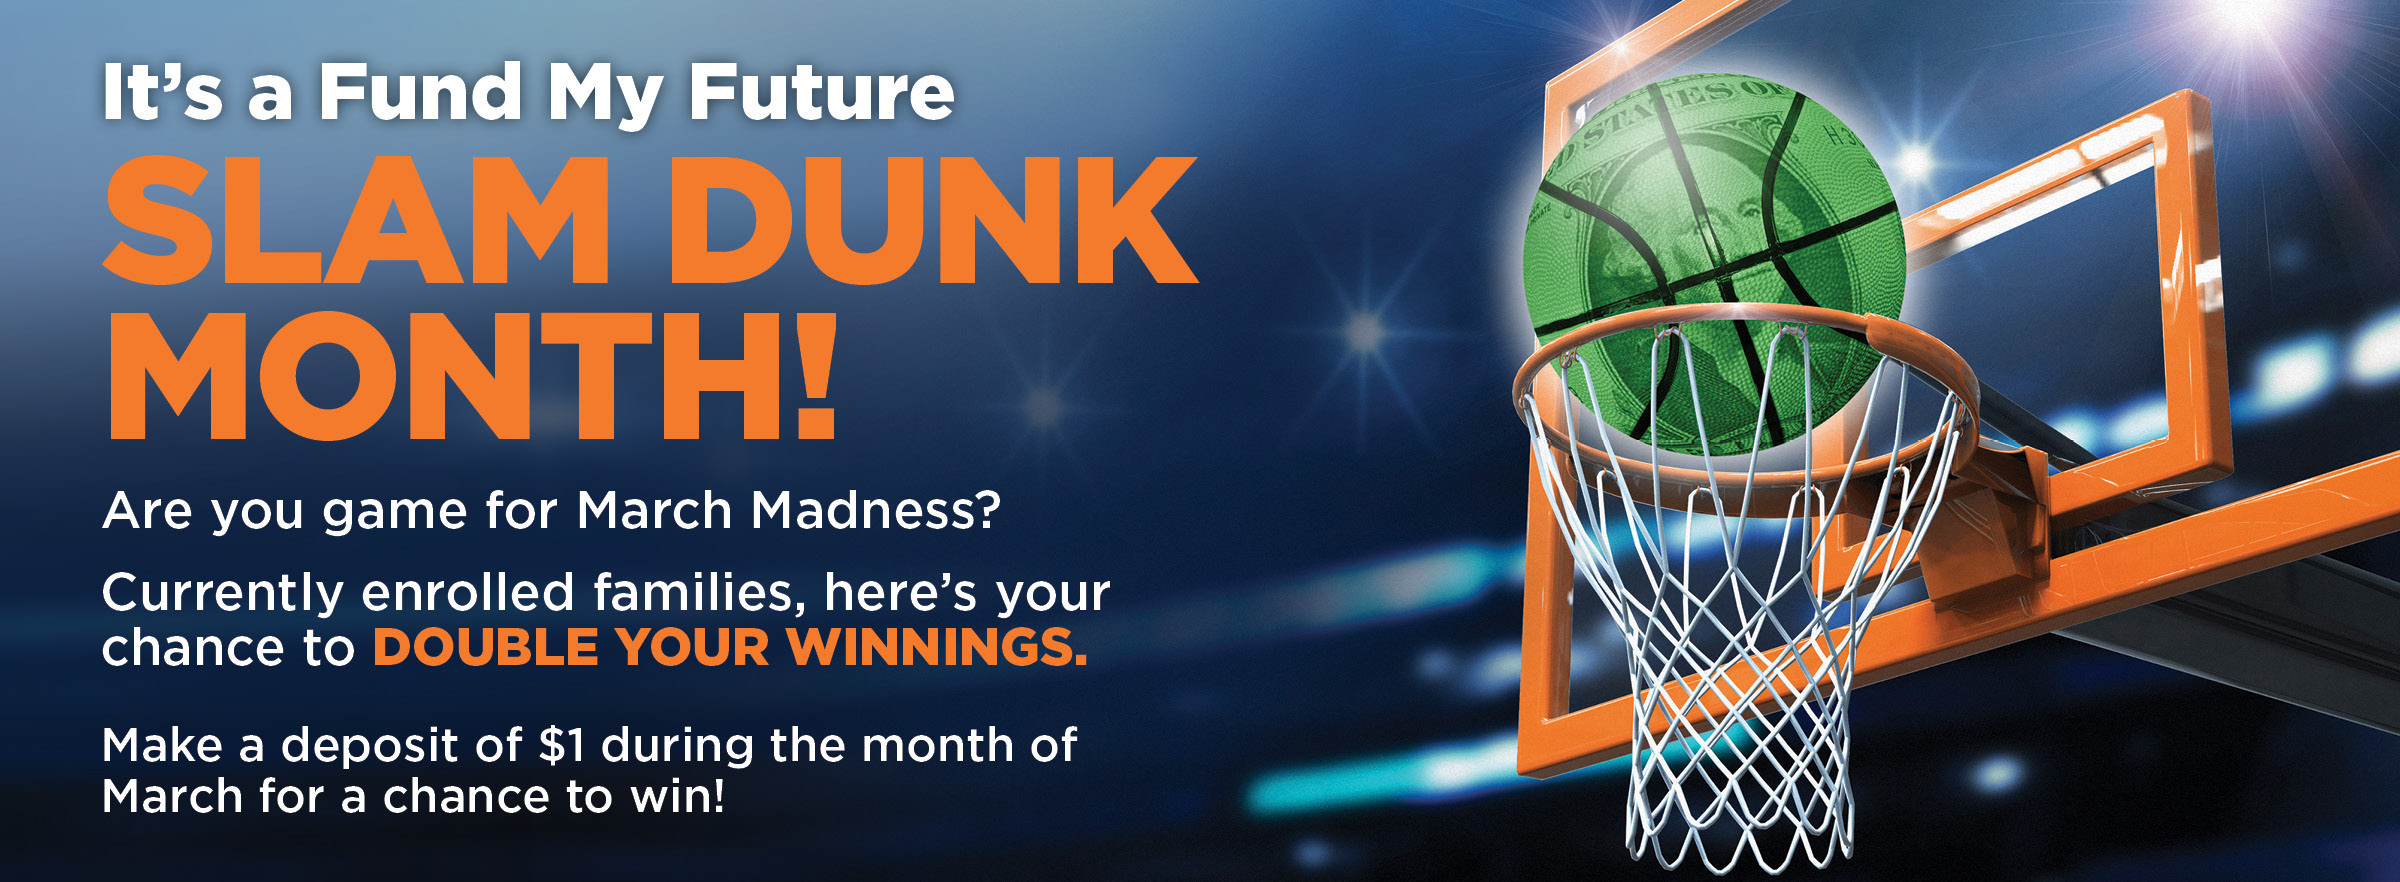 FMF march madness web banner – Fund My Future